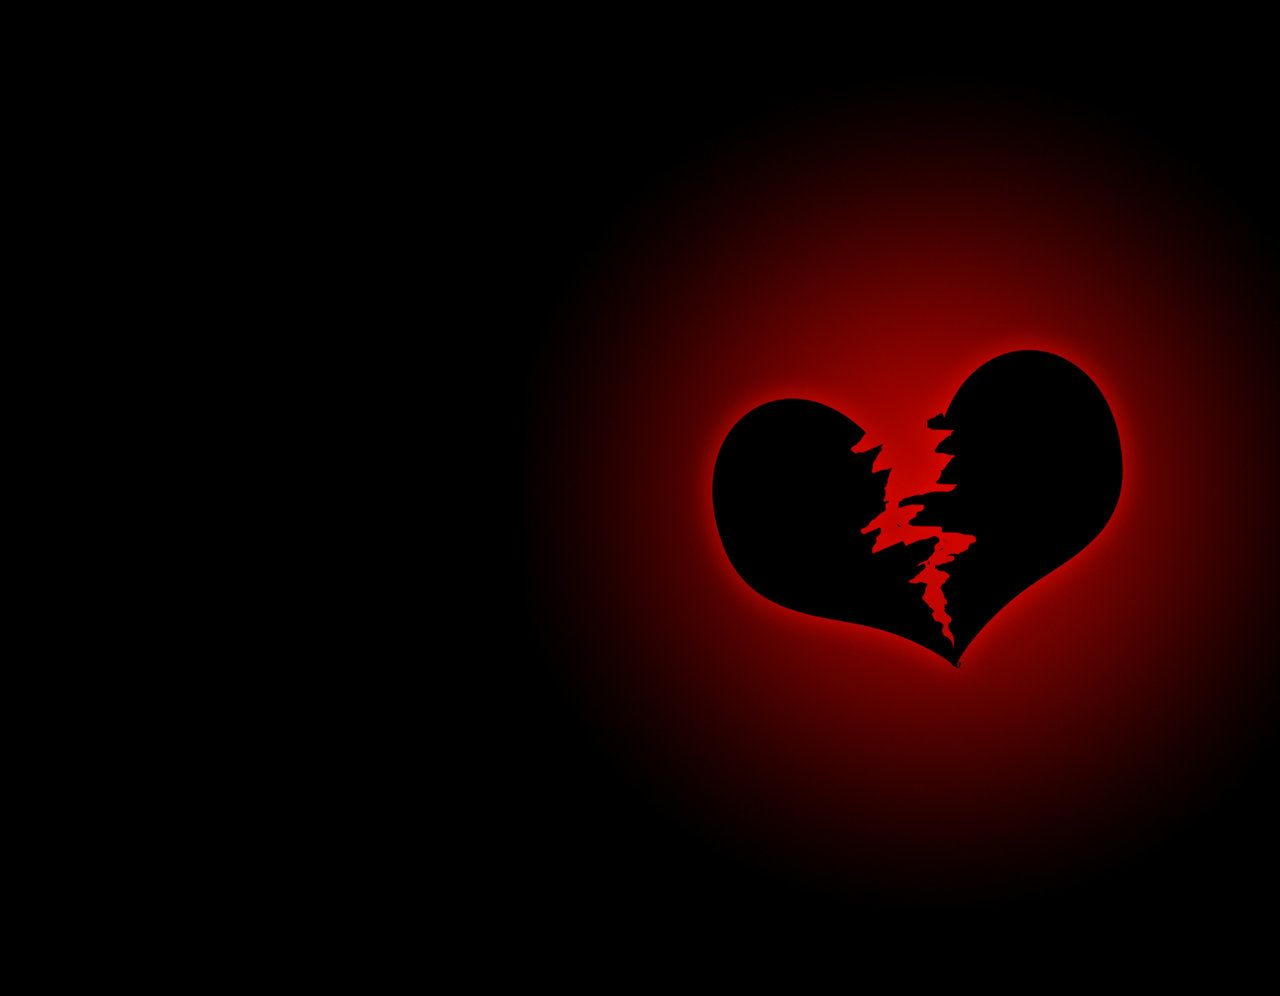 Love Wallpapers Broken Heart : Broken hearts wallpaper #97985 at Love Wallpapers 1080p HD ... Broken Heart Pinterest ...